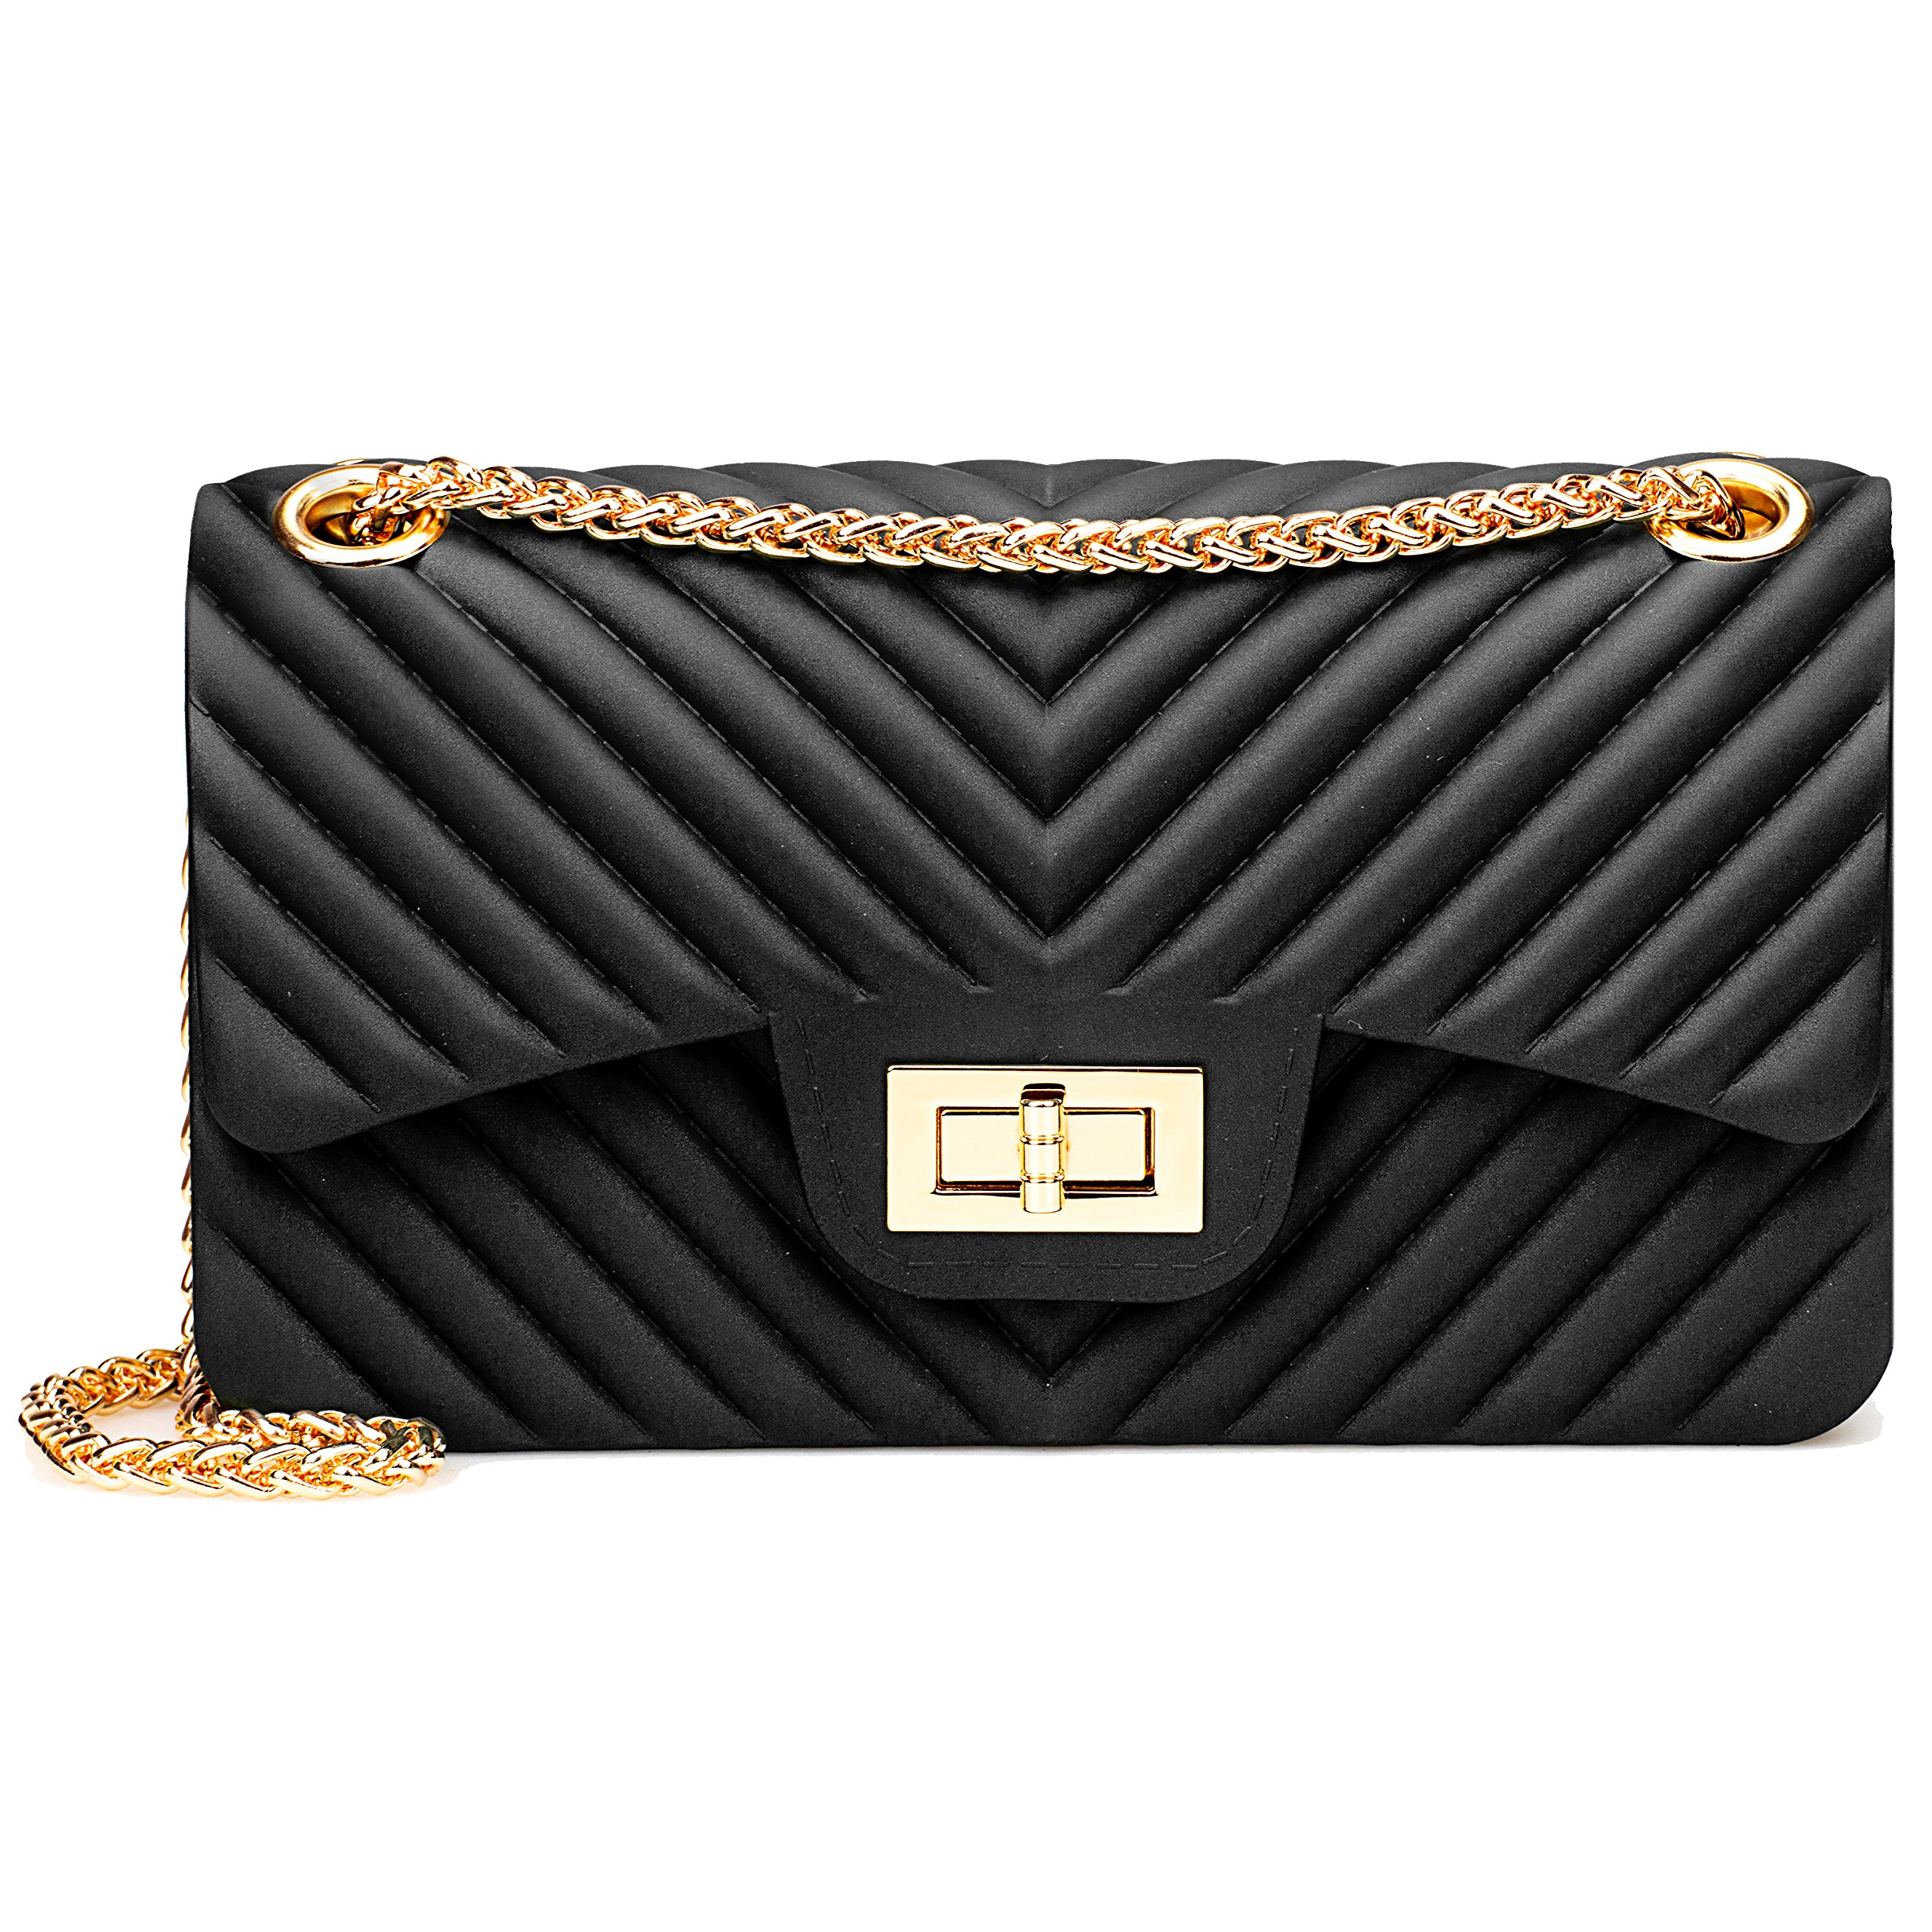 Women Fashion Shoulder Bag Jelly Clutch Handbag Quilted Crossbody Bag with Chain - Black